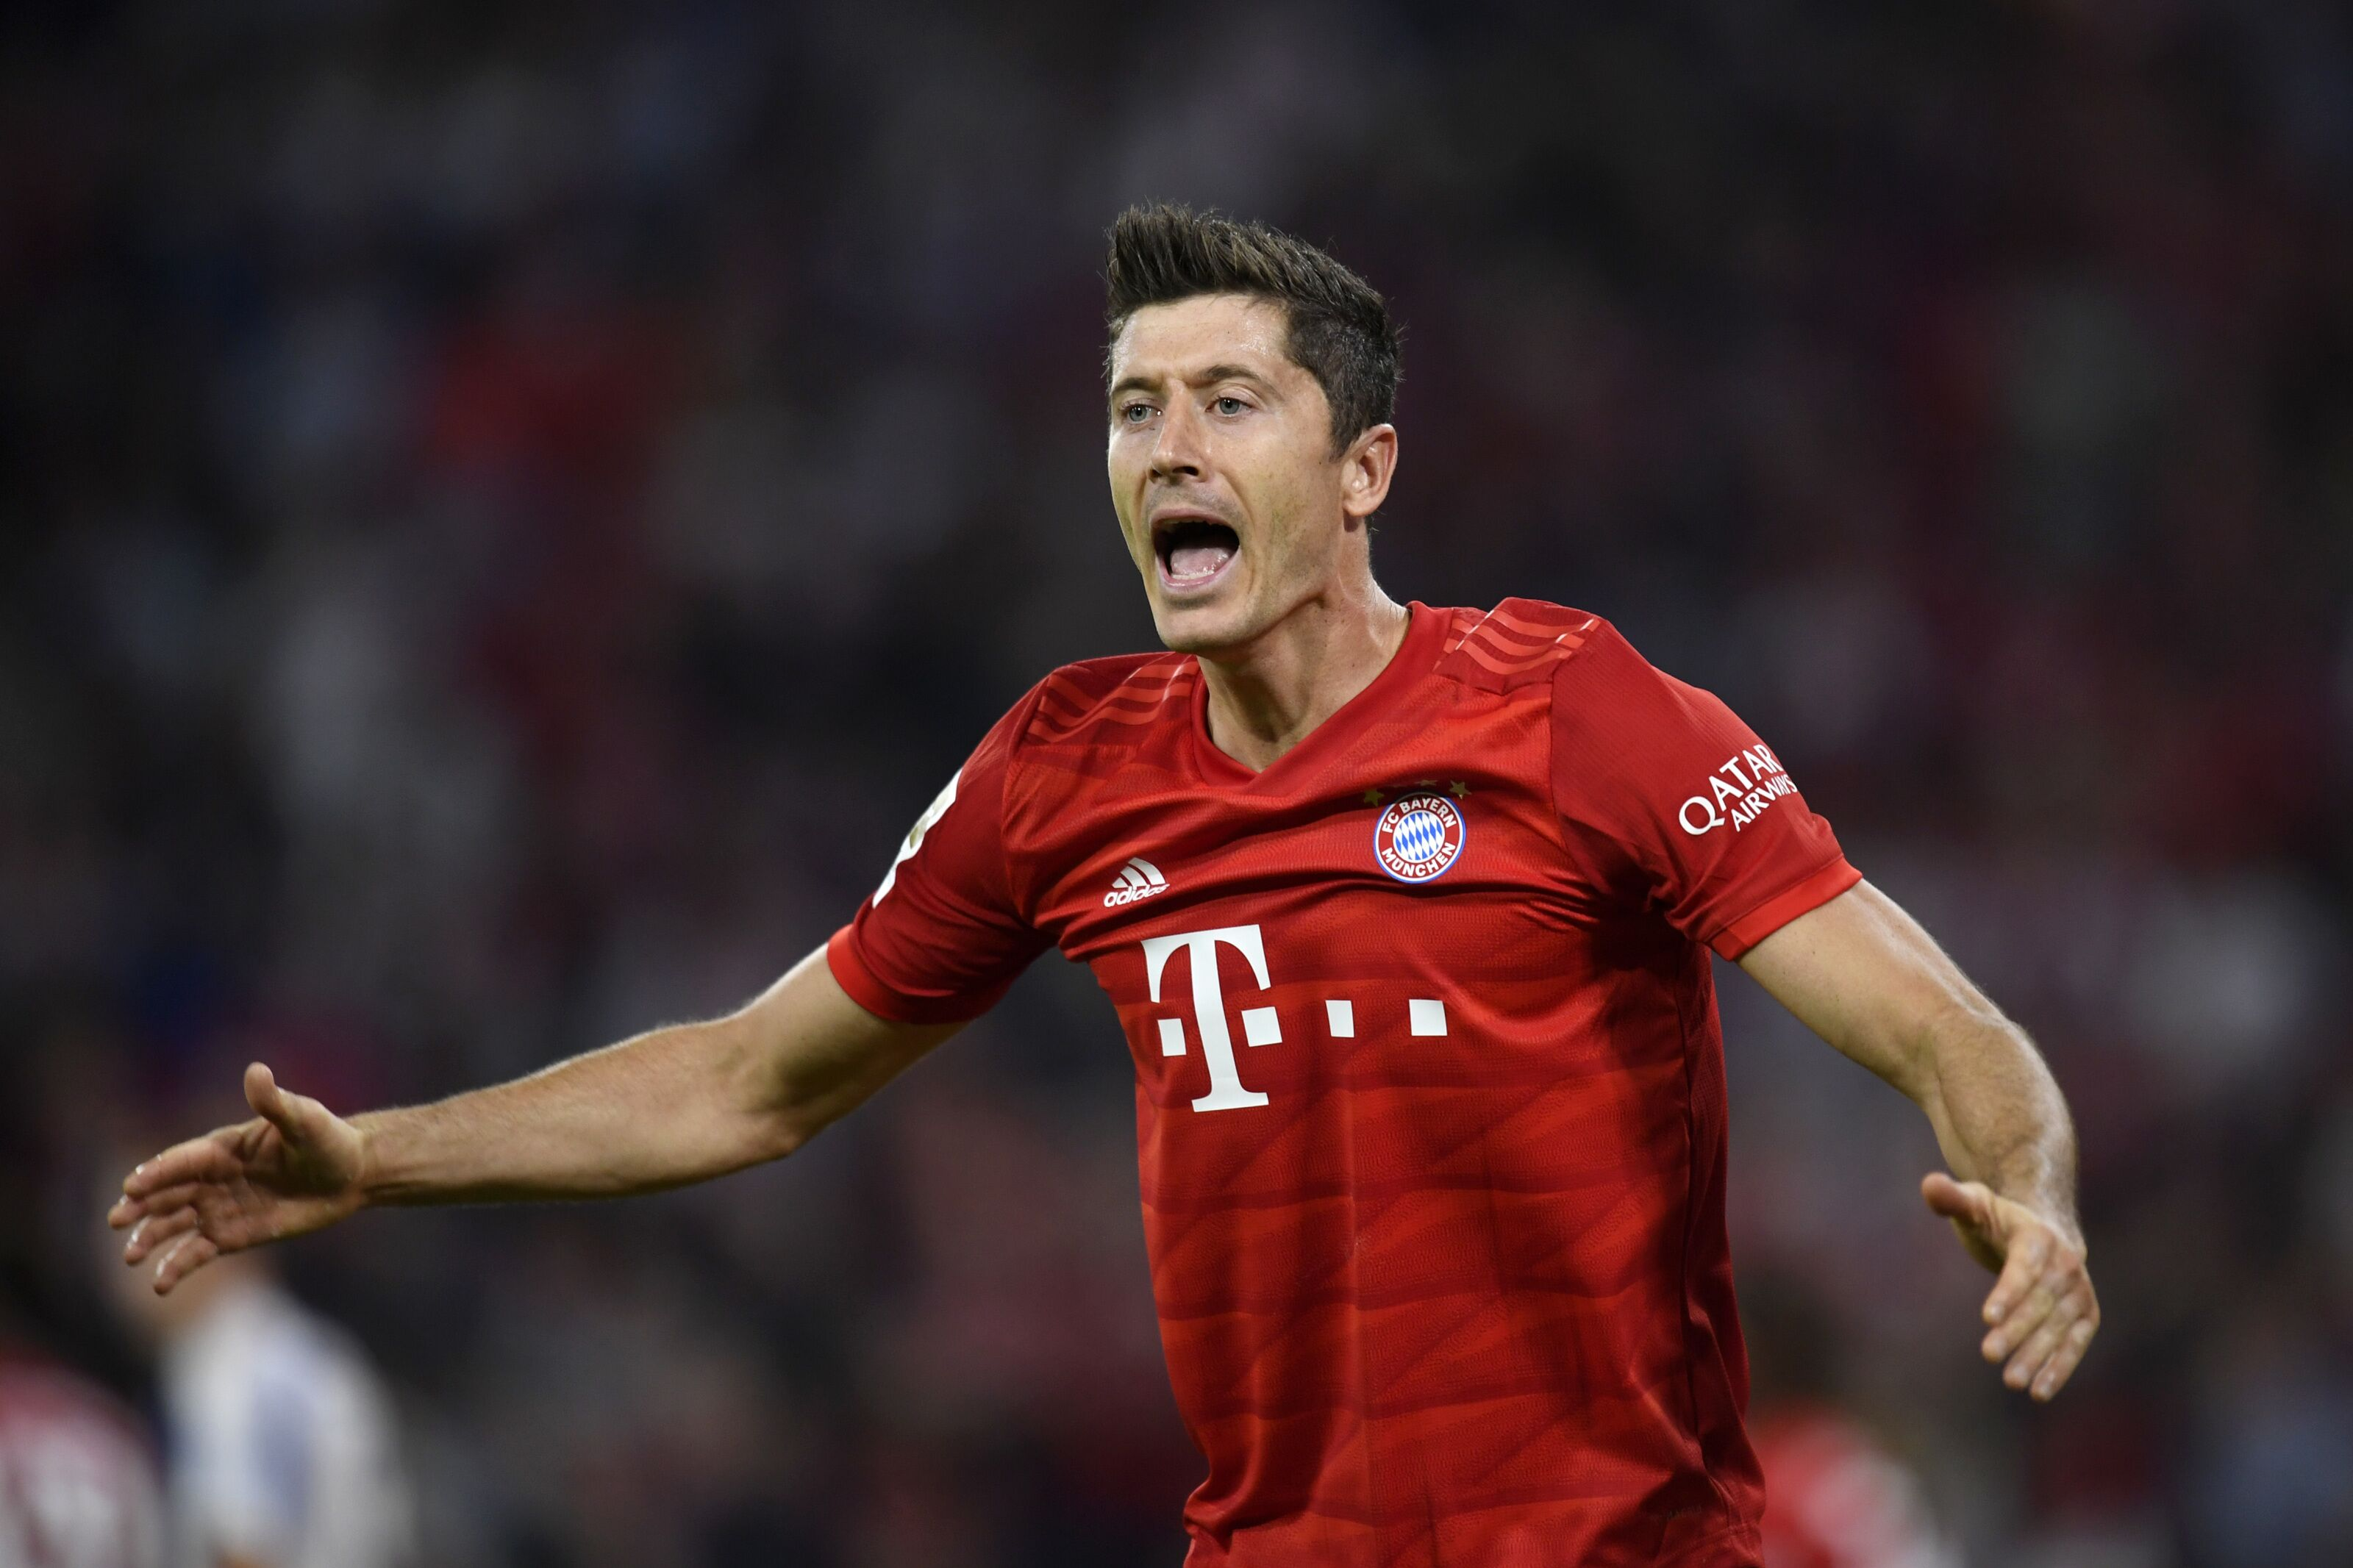 Bayern Munich can't keep being dependent on Robert Lewandowski's goals